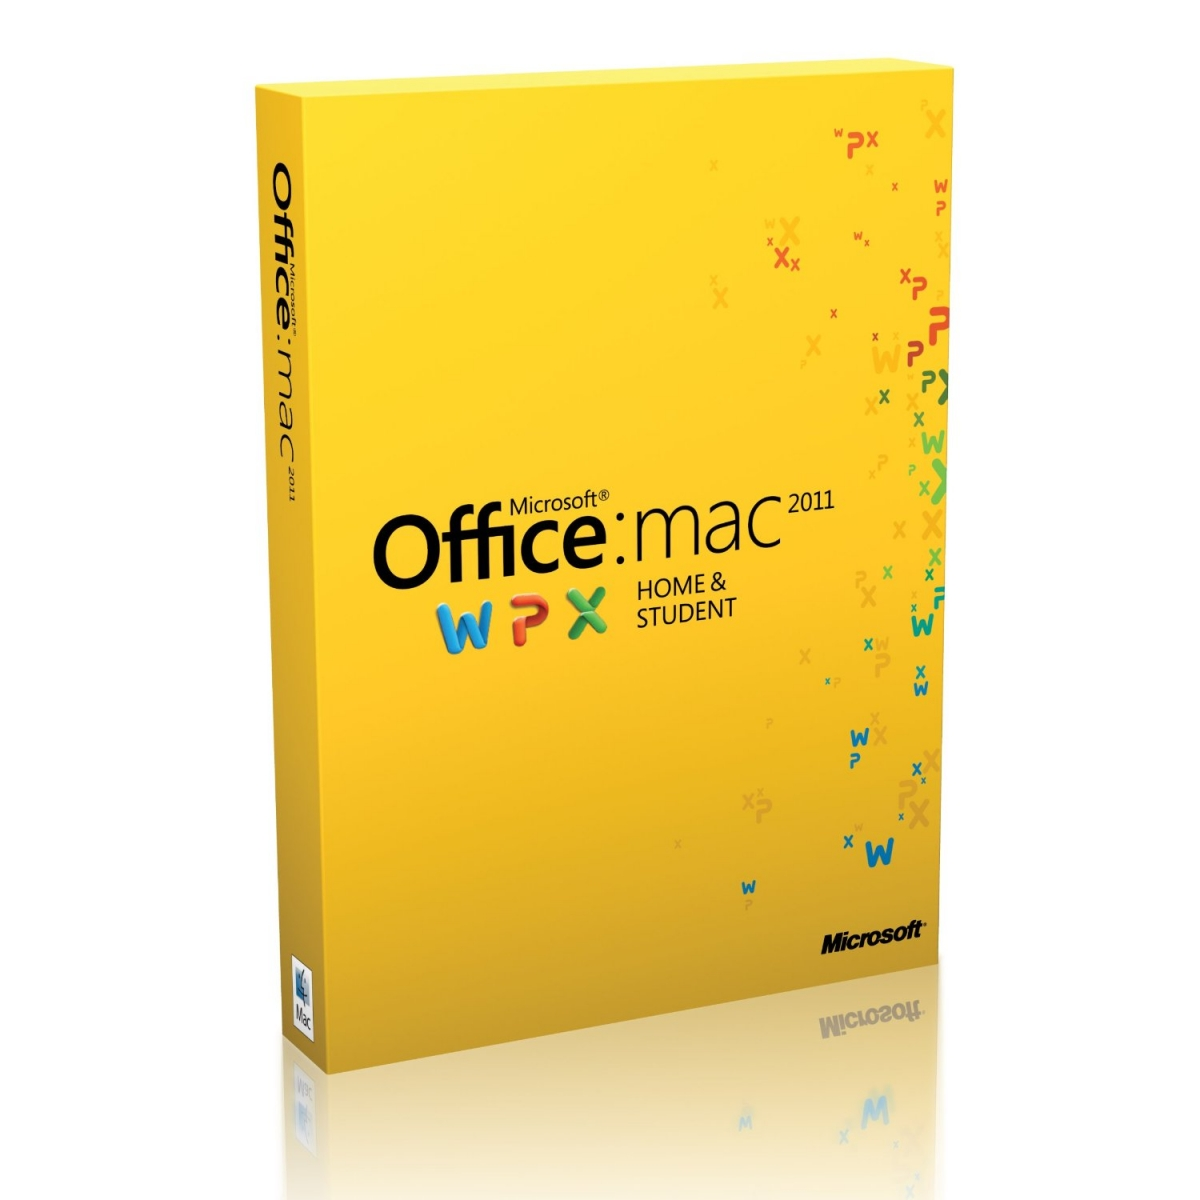 Microsoft Office for Mac 2011